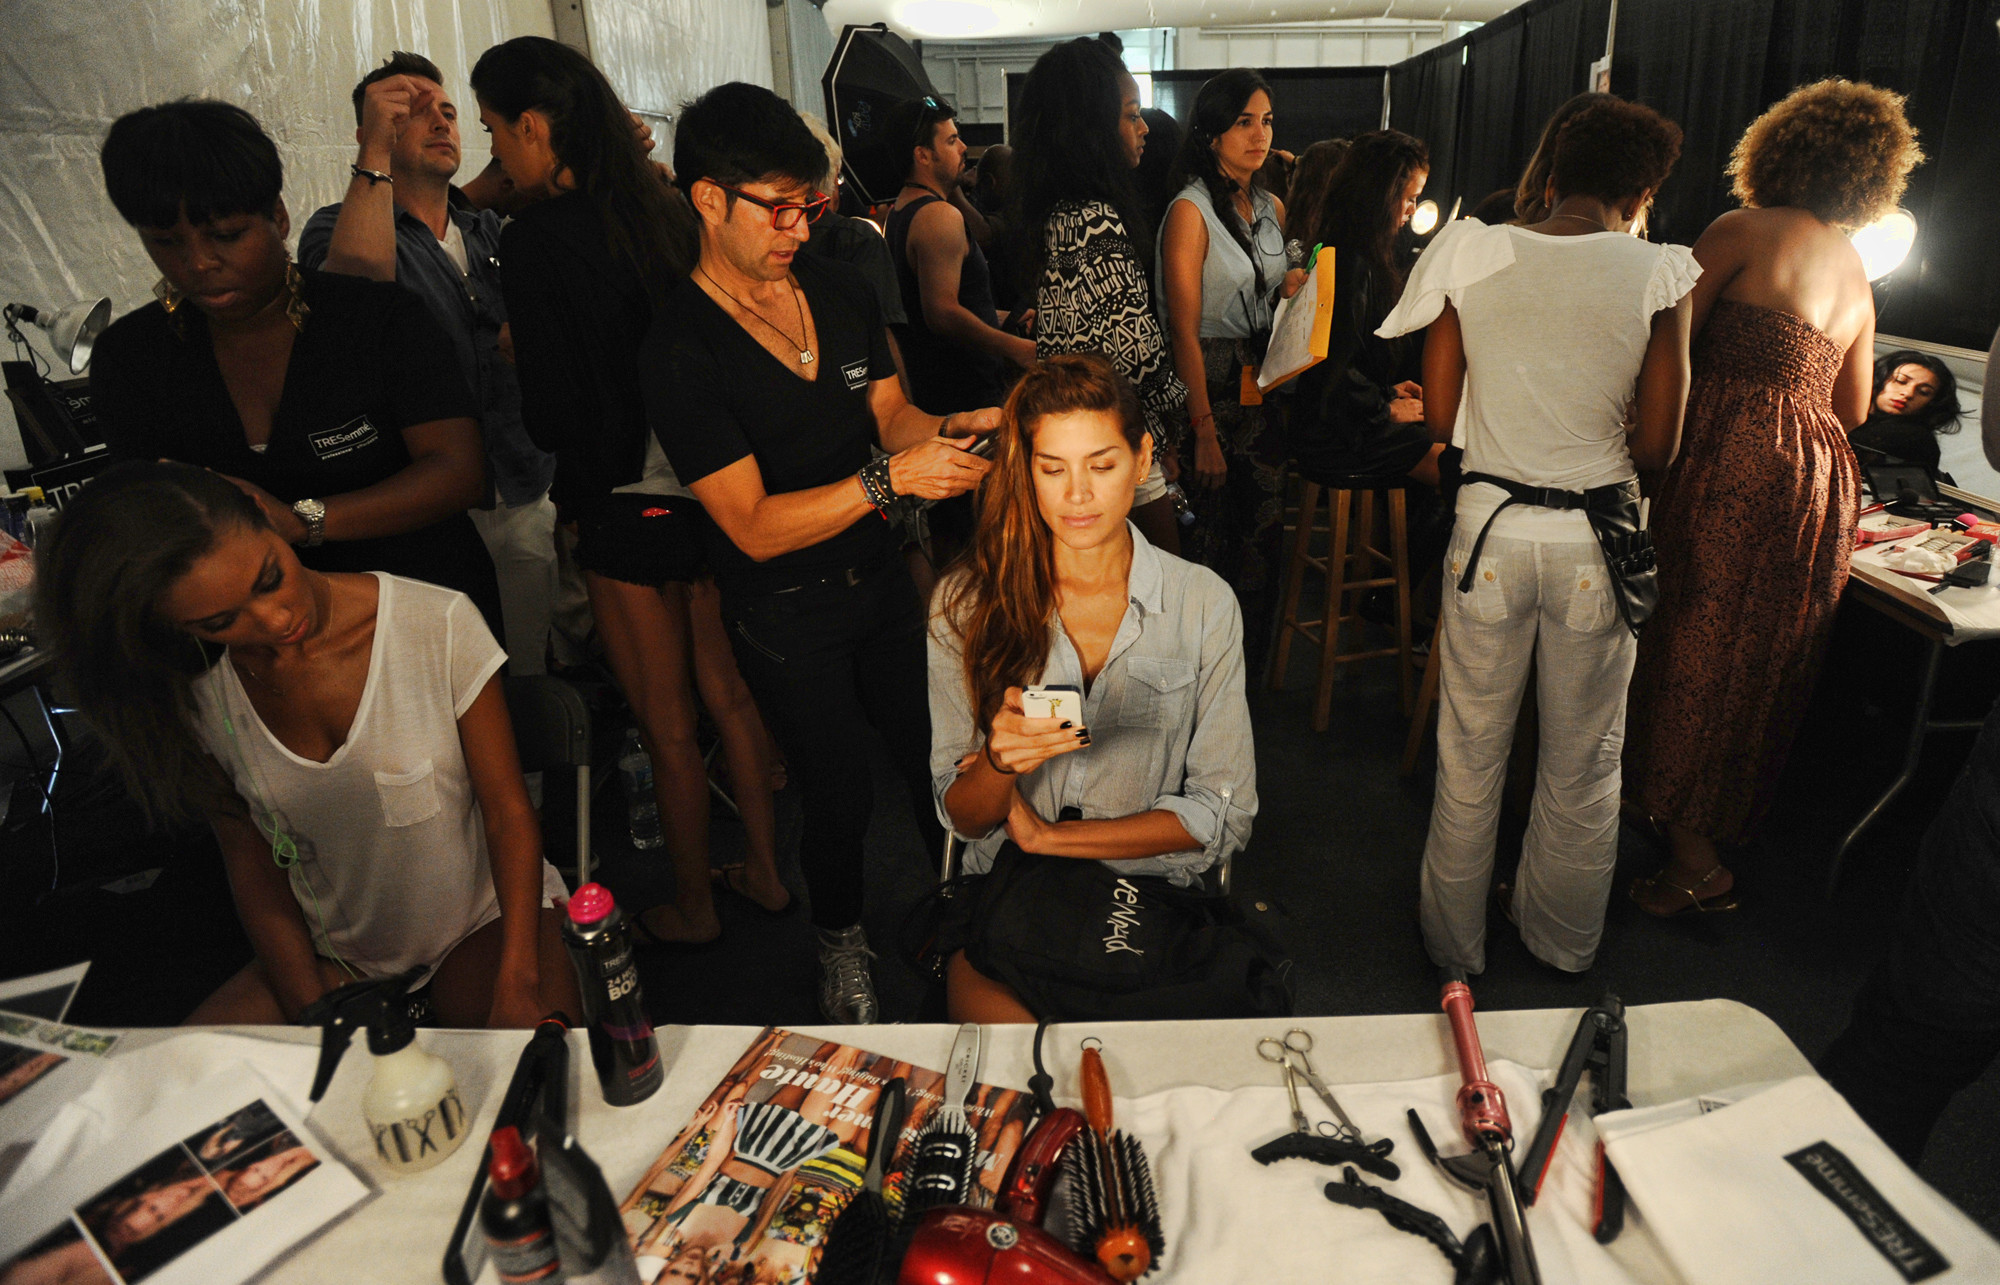 A look back at Miami Swim Week 2013 - Prep work